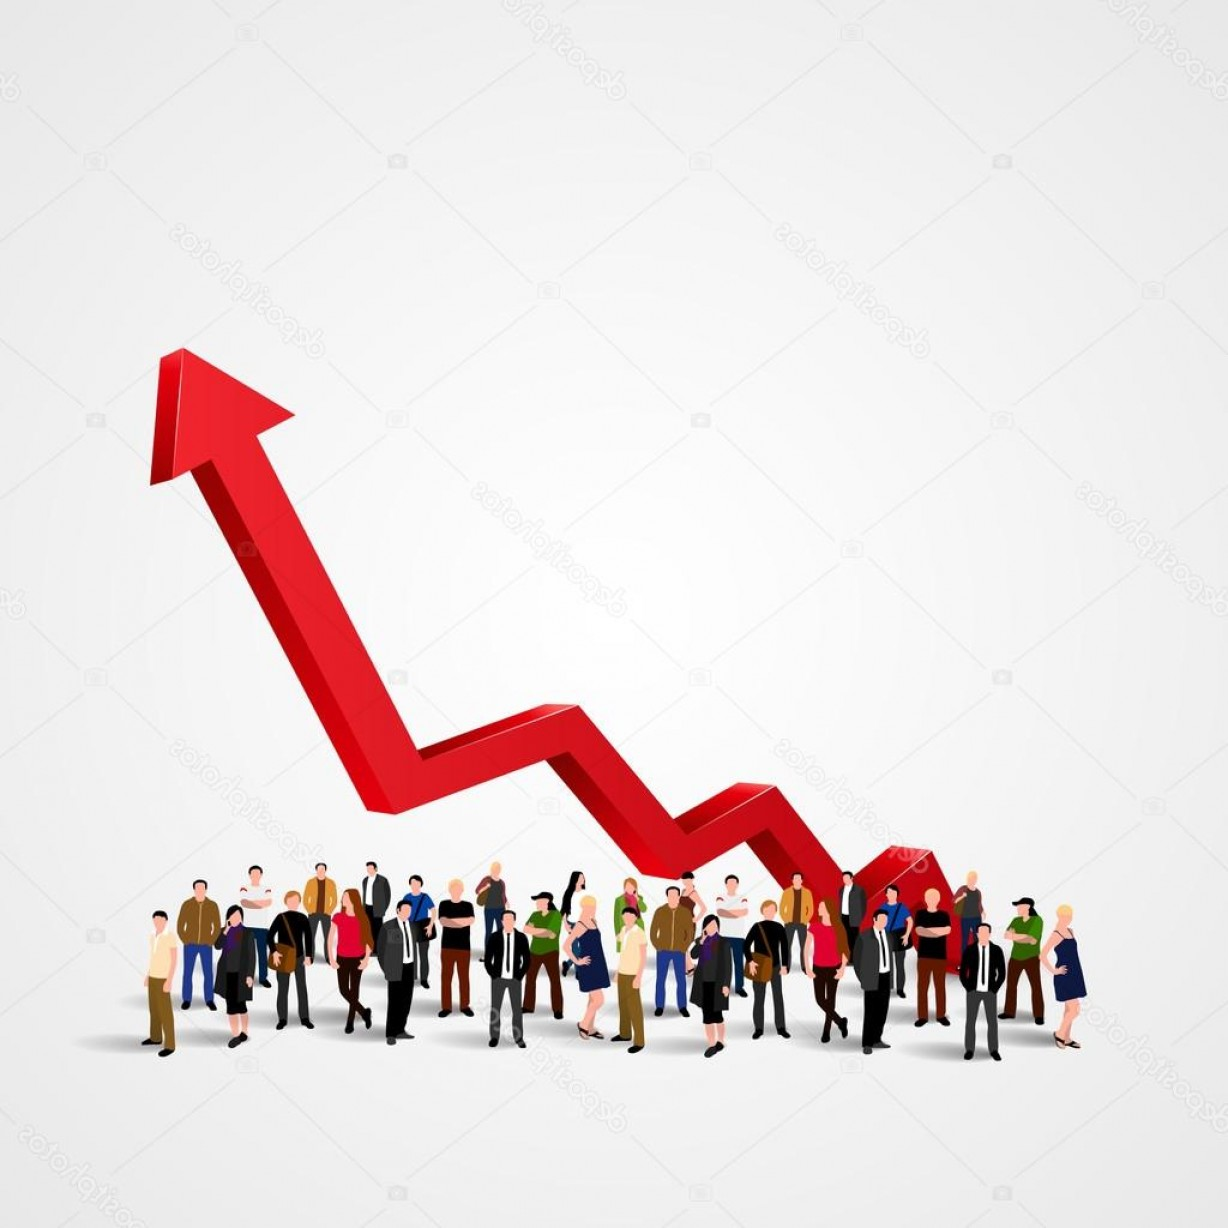 Growth Vector People: Stock Illustration Growth Chart And Progress In